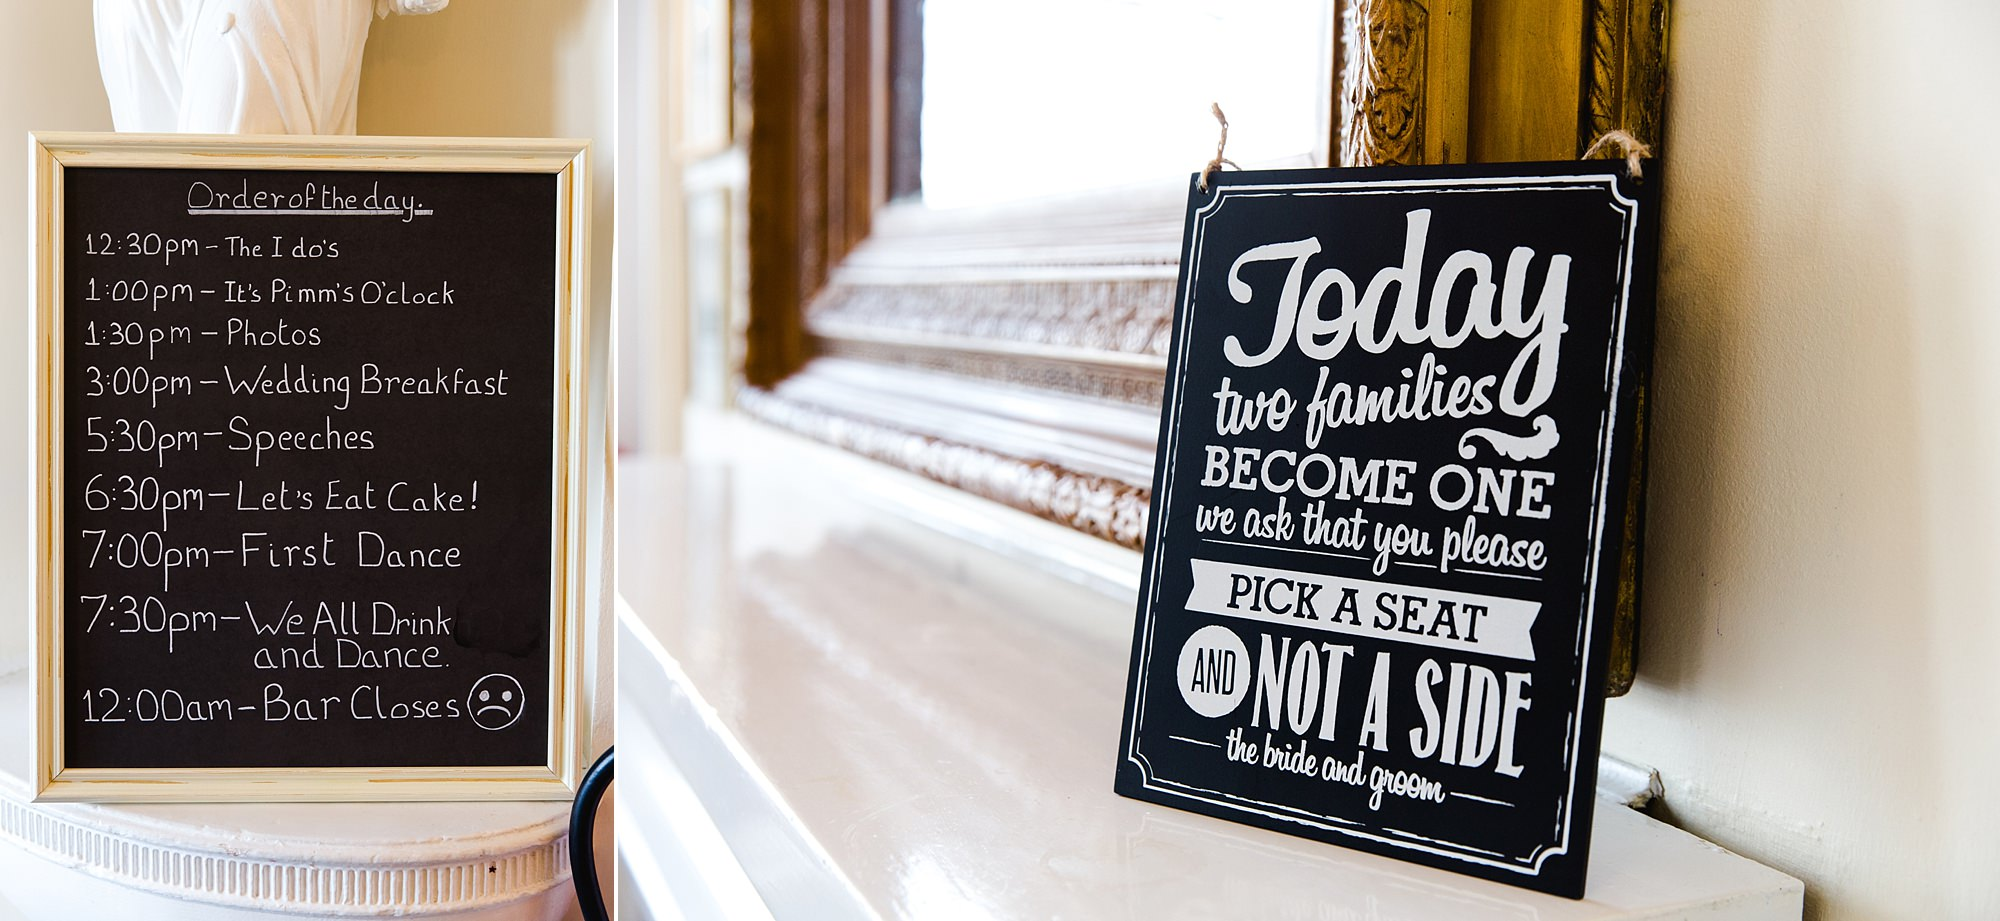 Trafalgar Tavern wedding signs for guests